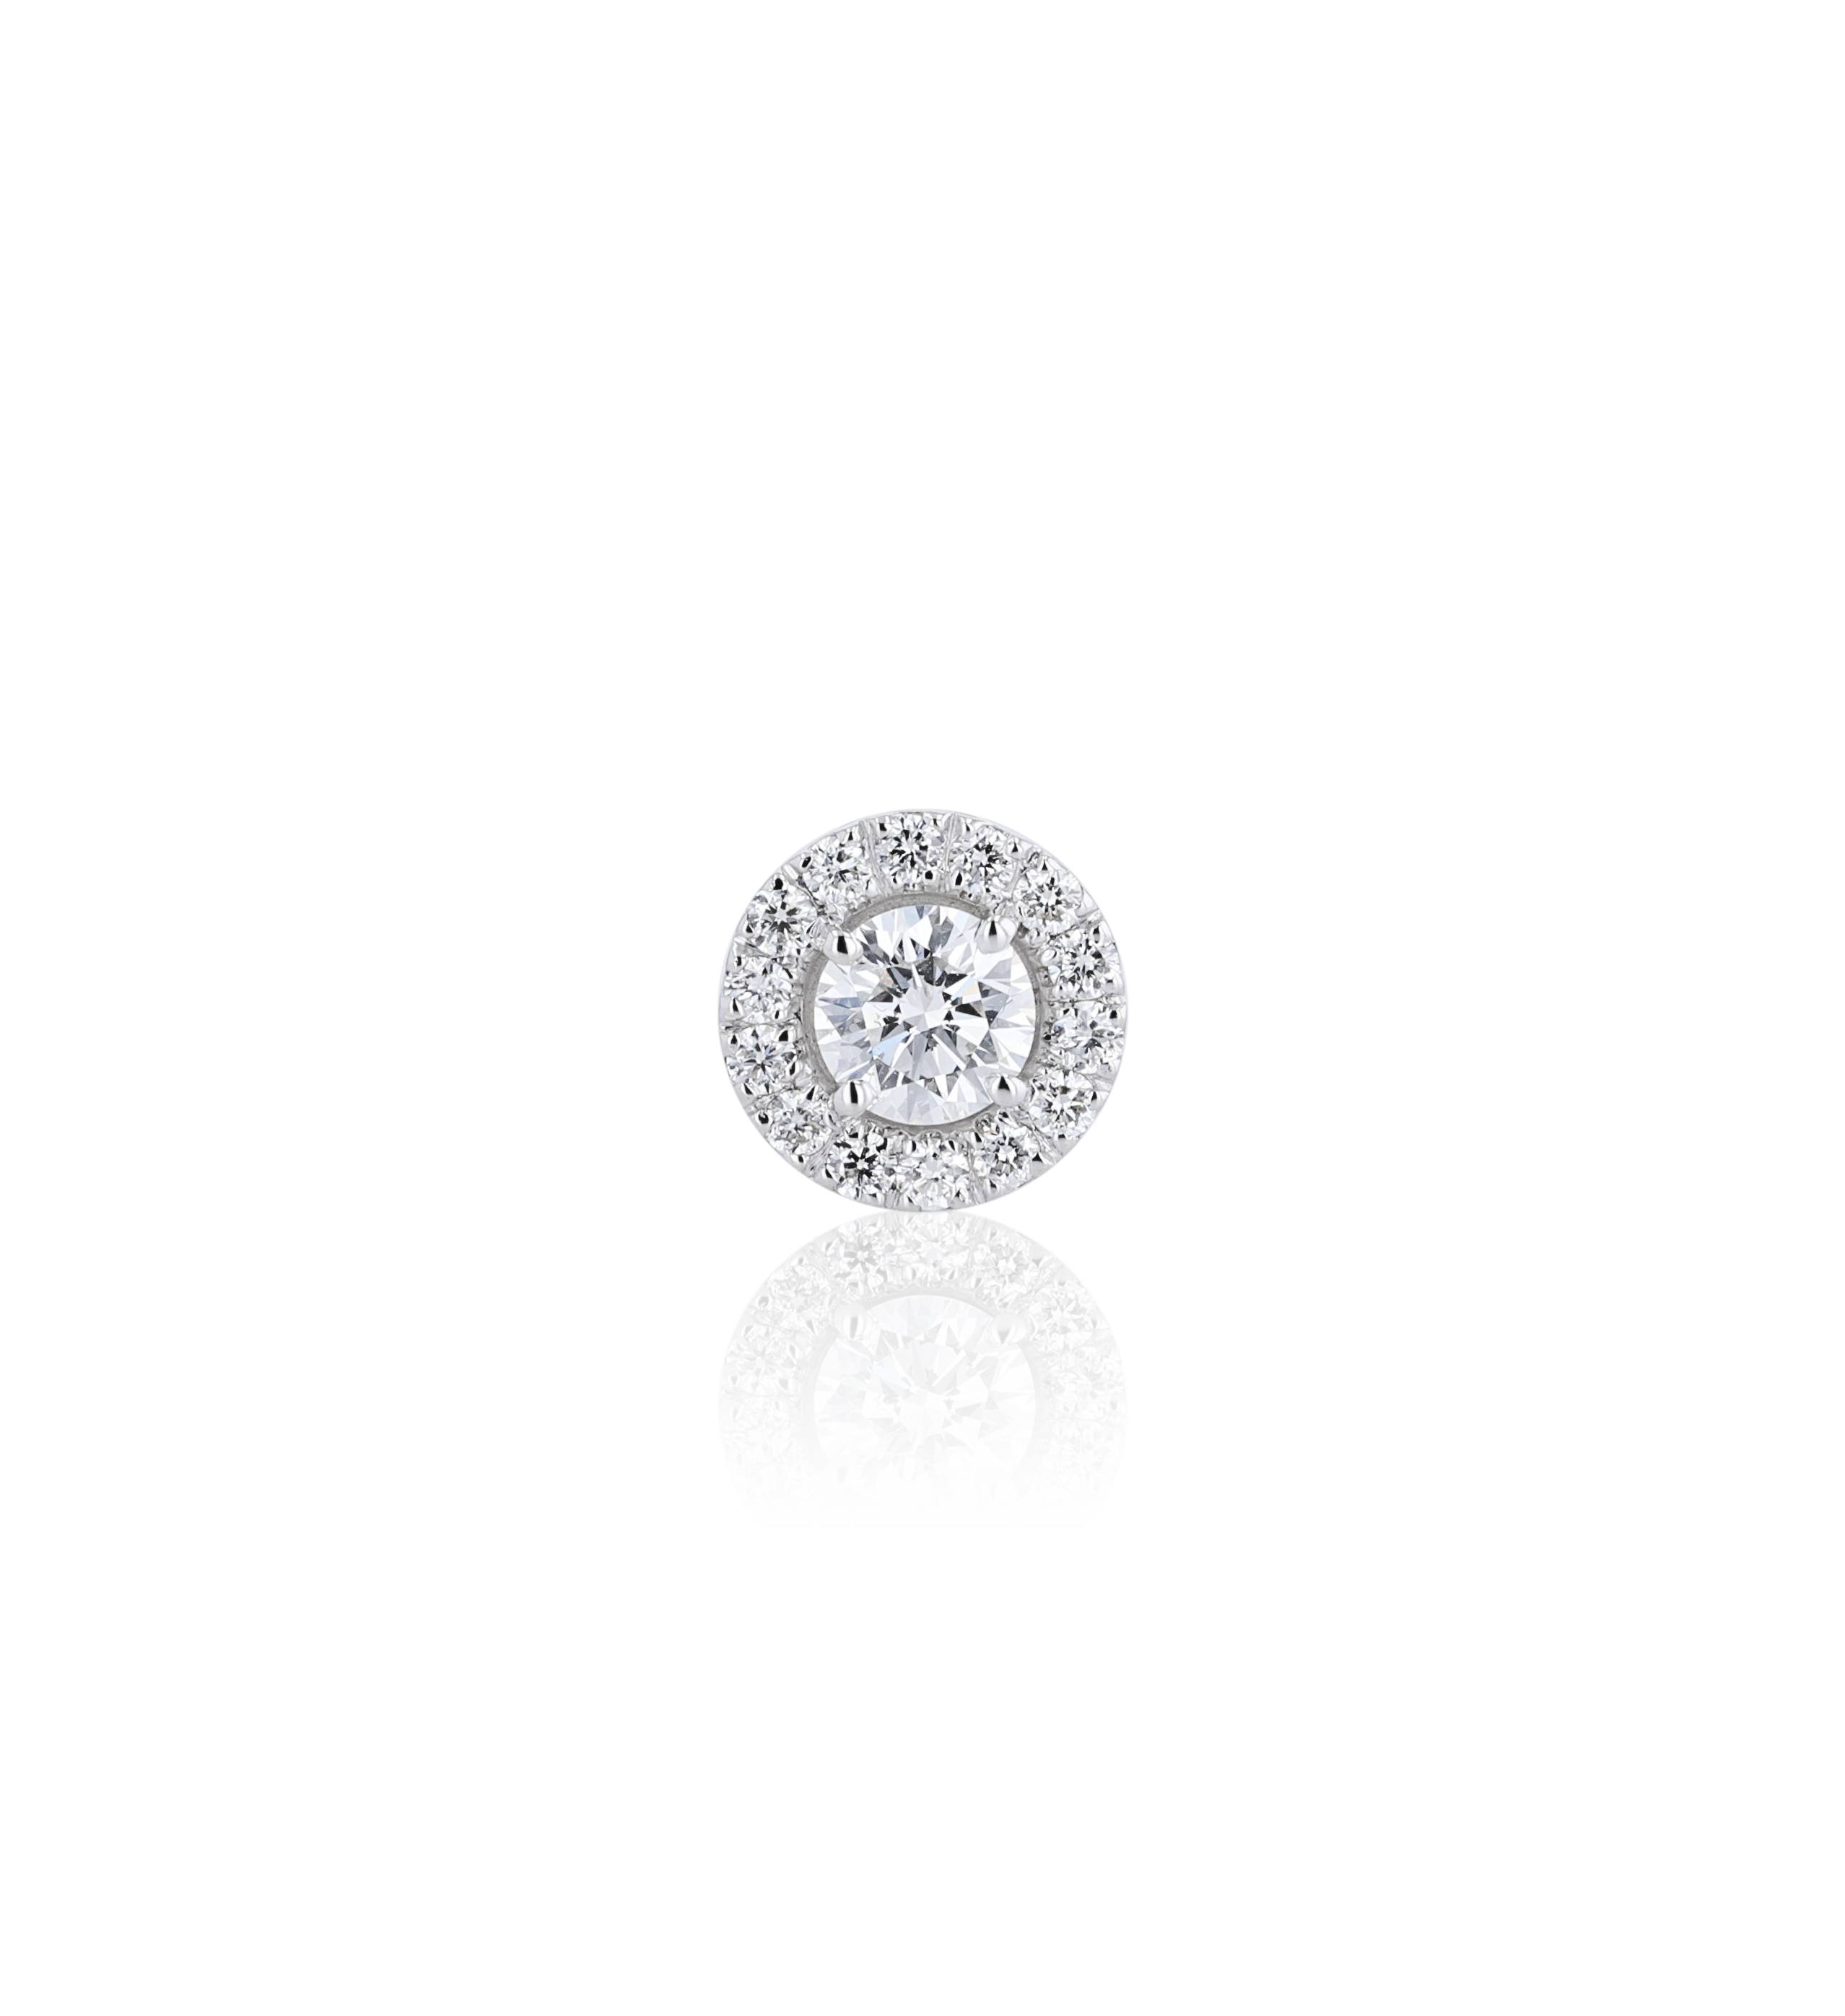 Halo Round Diamond Stud Earrings in 18K White Gold 0.63 CT